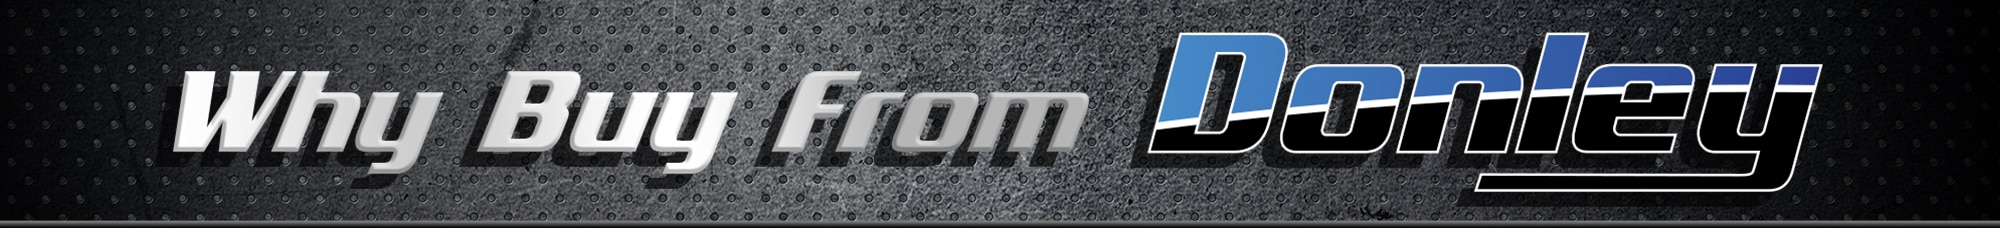 Donley Ford Galion >> Why Buy From Us? | Donley Ford of Galion, Local Ford SUV Dealer